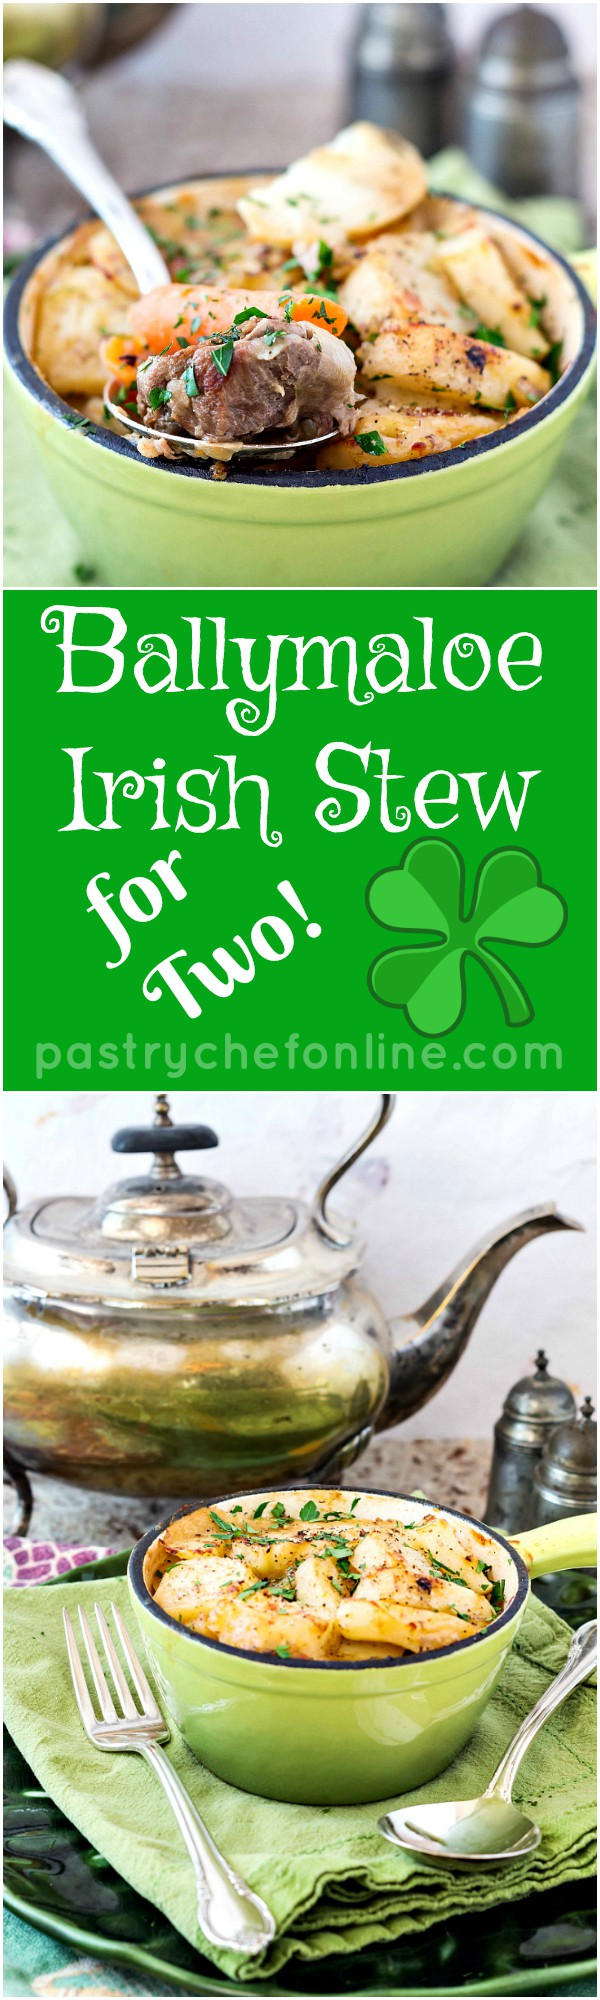 Ballymaloe Irish Stew for Two (or Four) is made of simple ingredients flavored simply. The result is a rich, satisfying stew perfect for your St. Patrick's Day dinner or any time you want an easy stew recipe. | pastrychefonline.com